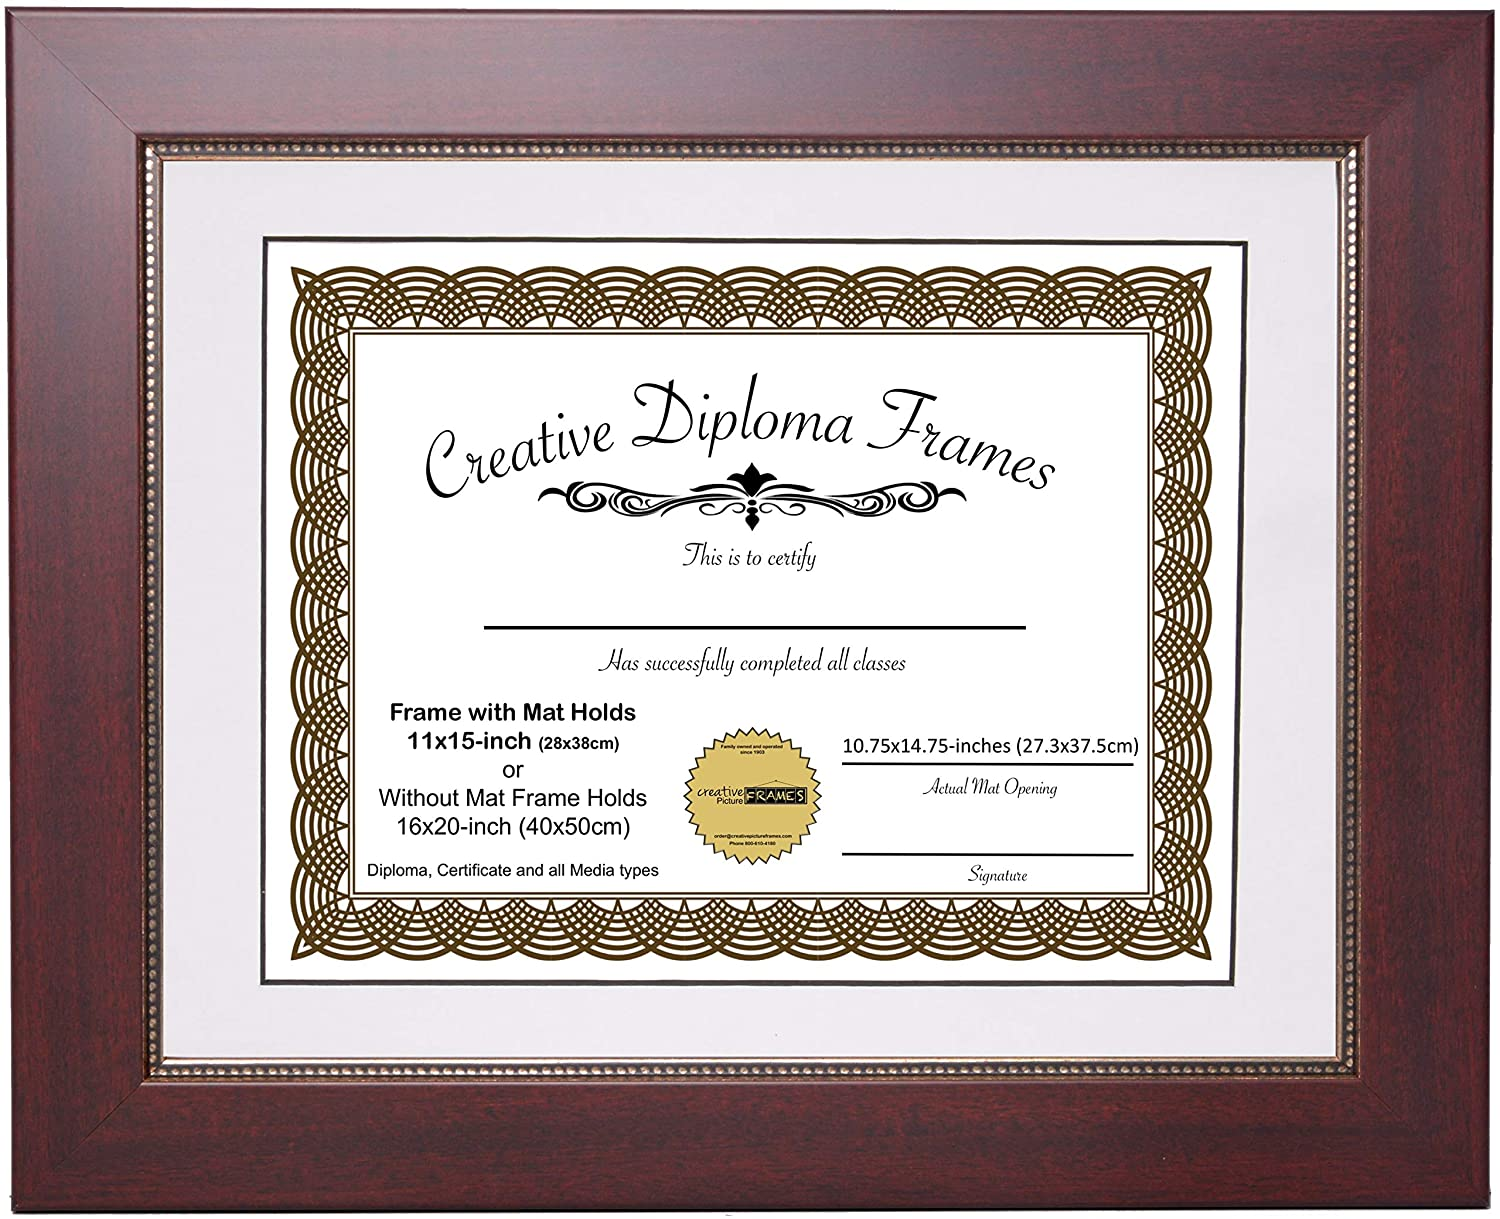 Printed Gold Relief Mahogany Diploma Frame with Black Matting Holds 11x14-inch Documents with Glass and Installed Wall Hanger CreativePF 68-810mrv-b